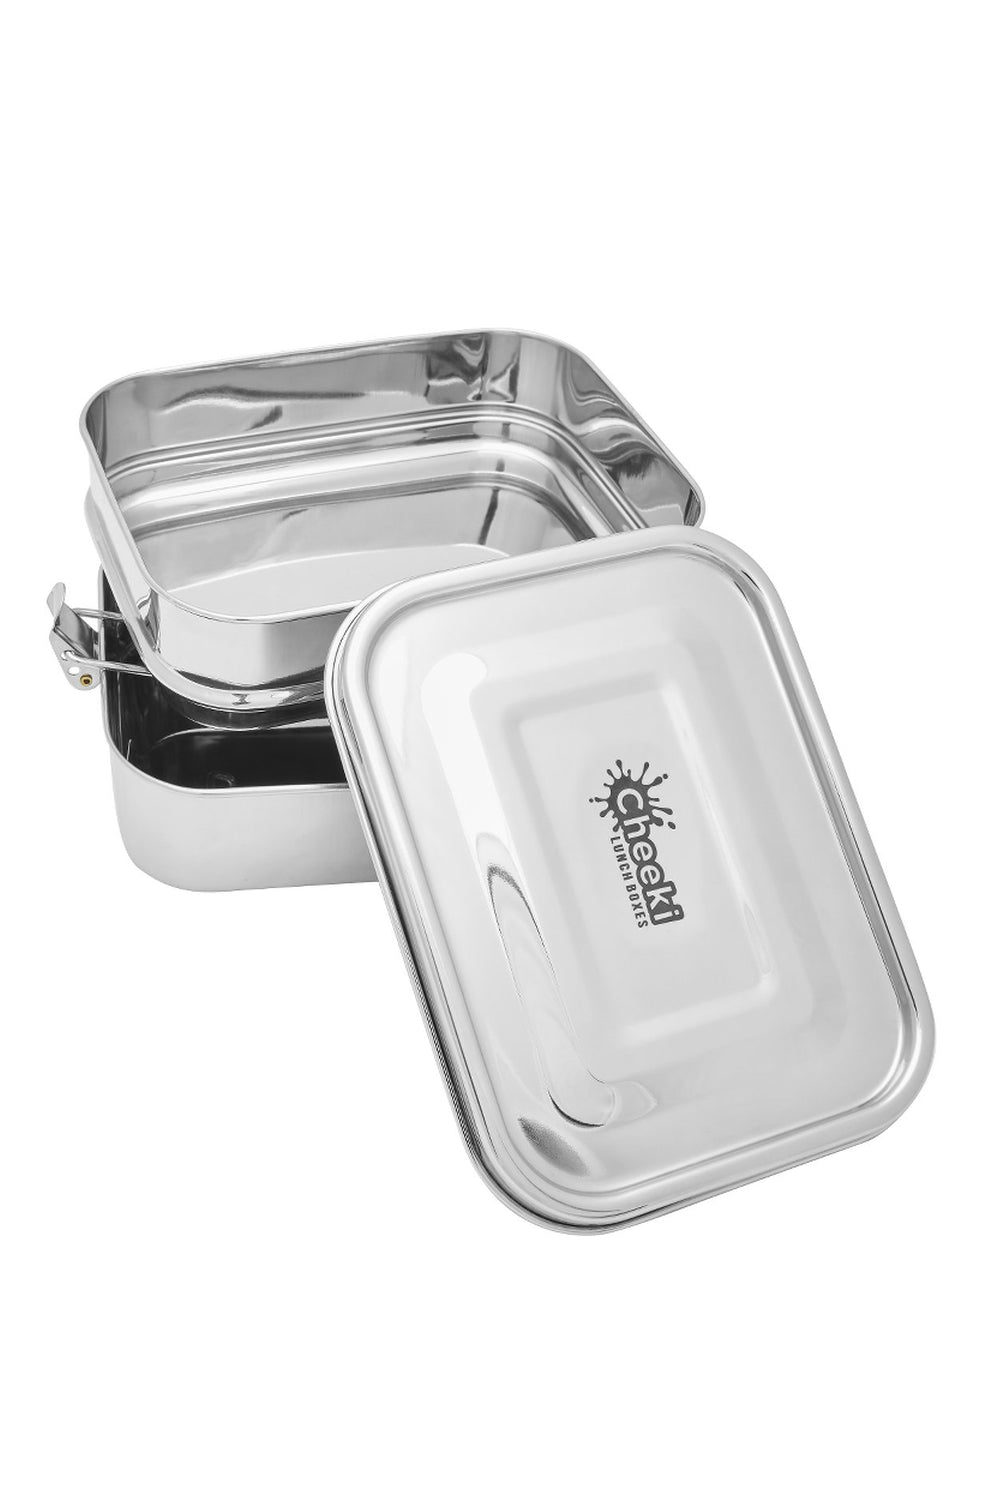 Cheeki 1 litre double stack Bento lunch box - Plastic Free Living